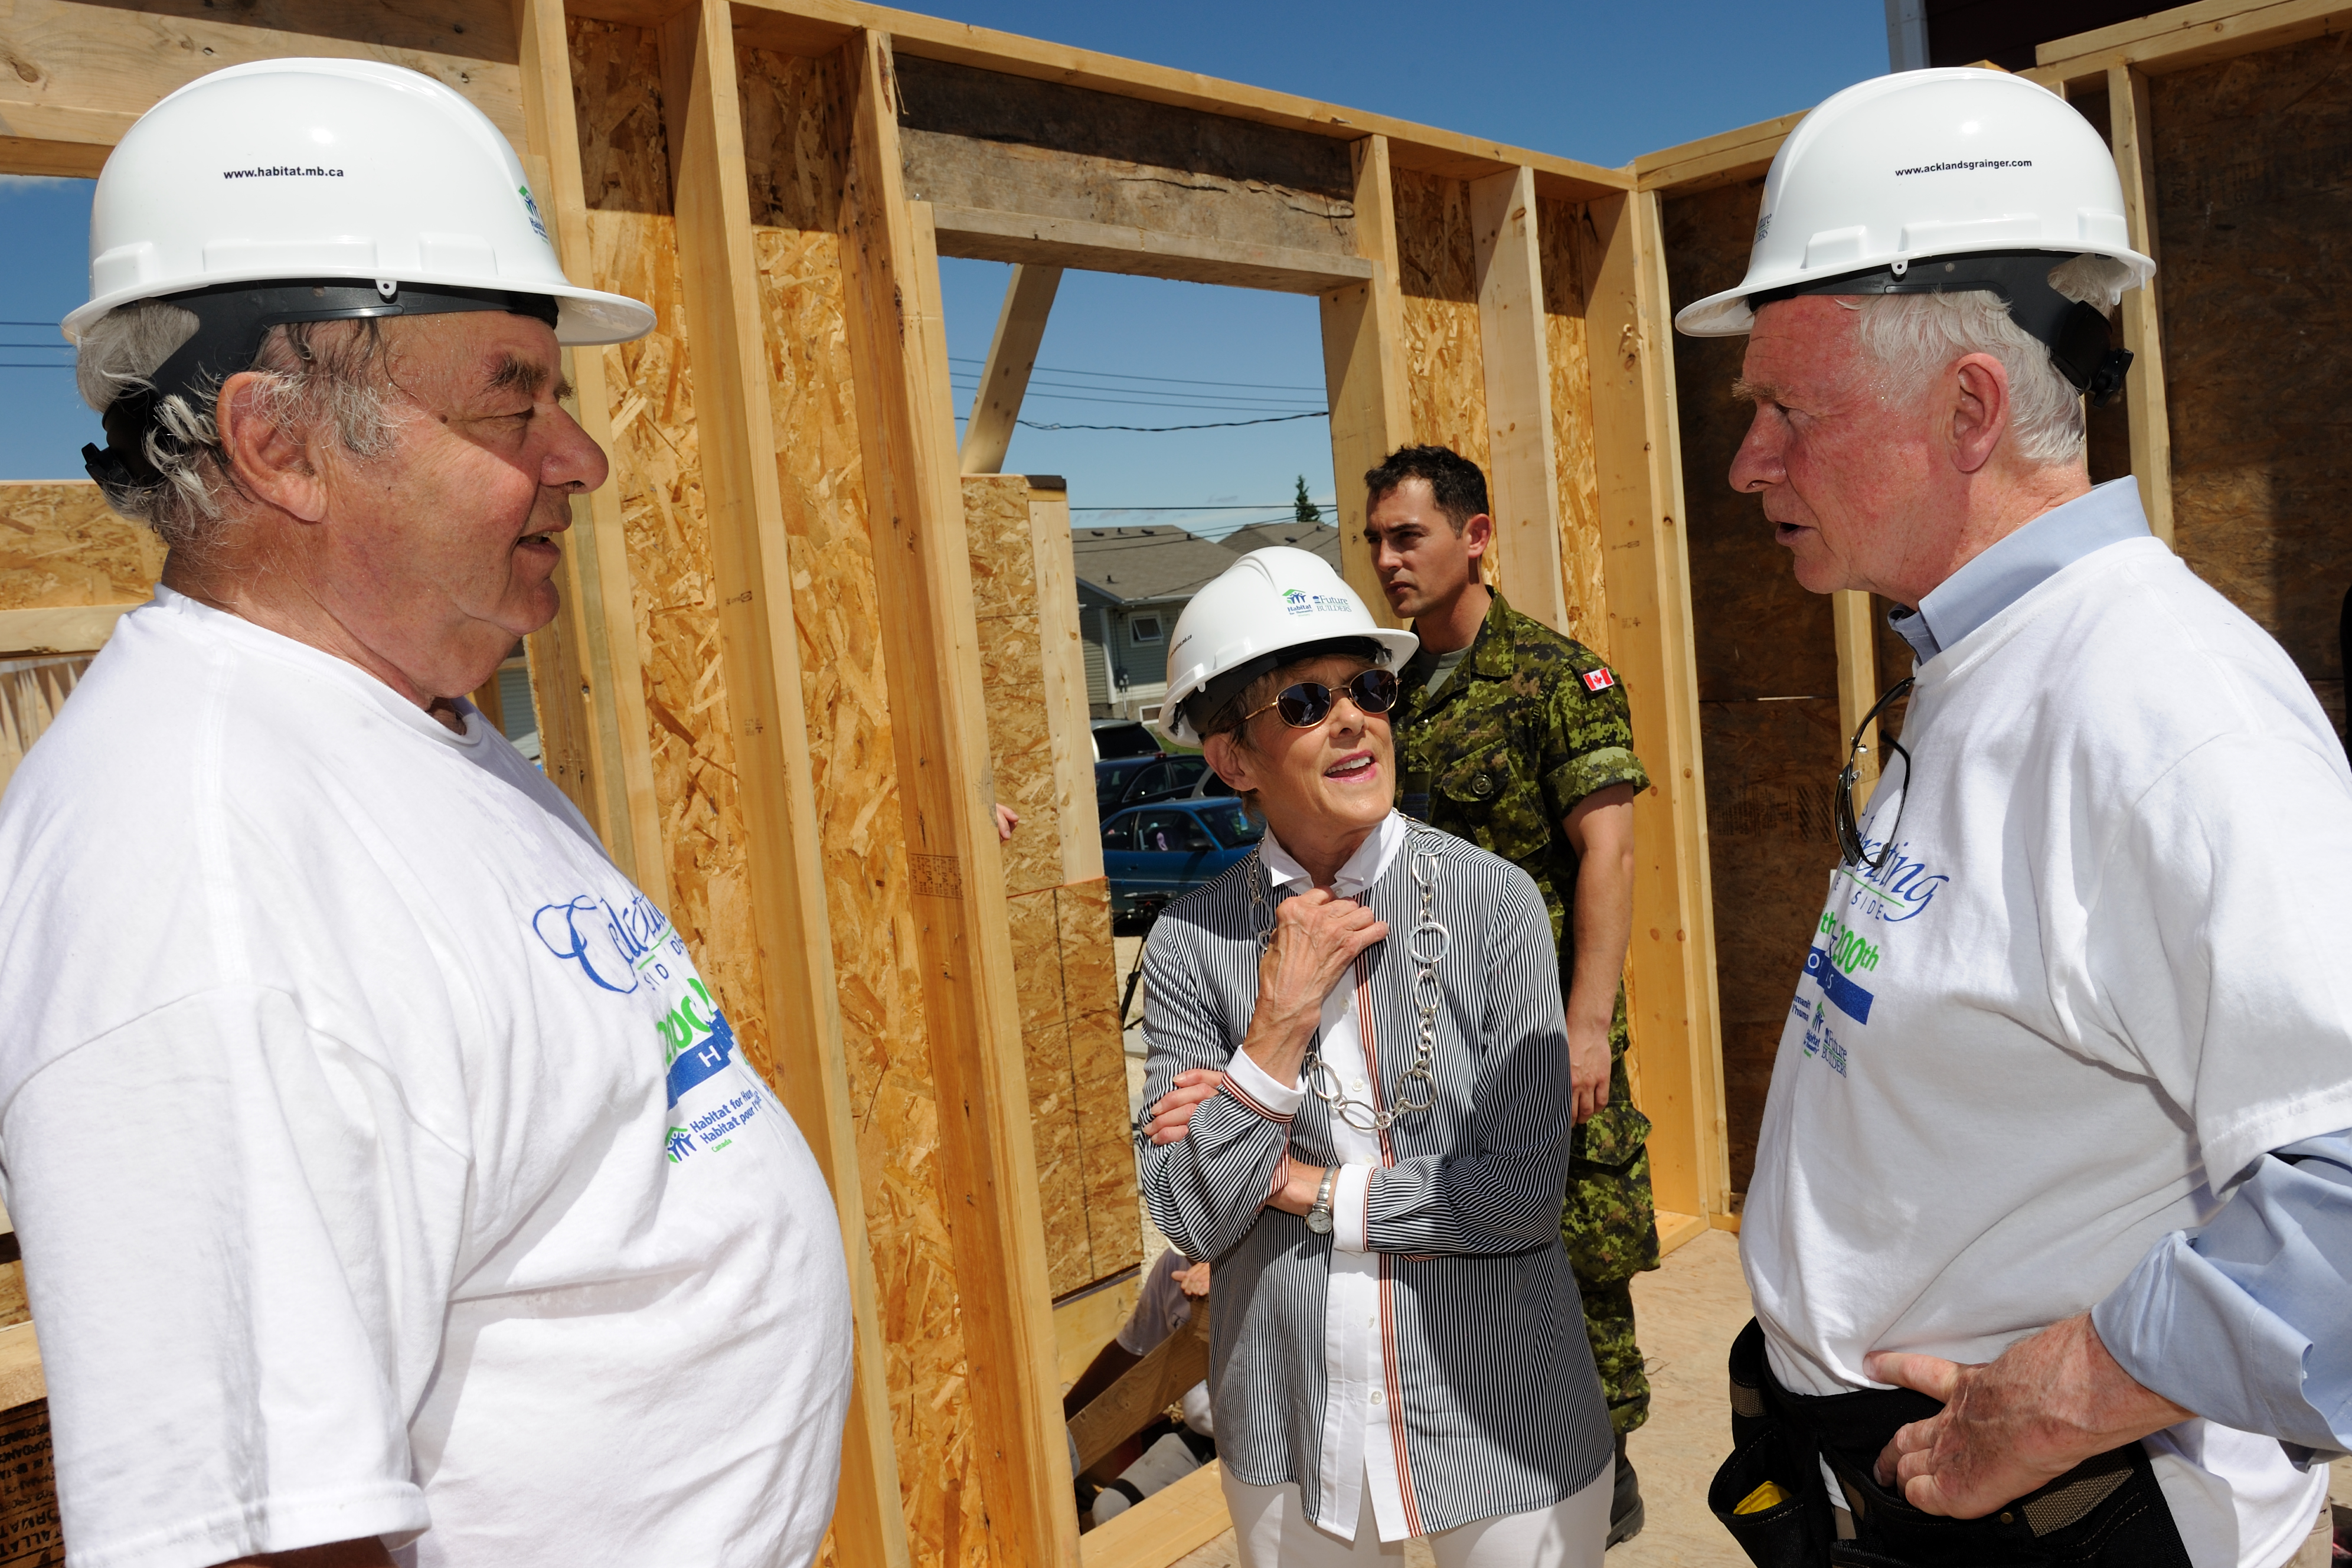 In 2011, His Excellency the Right Honourable David Johnston, Governor General of Canada, became patron of Habitat for Humanity Canada. The Right Honourable Edward Schreyer, former governor general of Canada, has been serving as member of Habitat for Humanity's International Board of Directors since 2009.